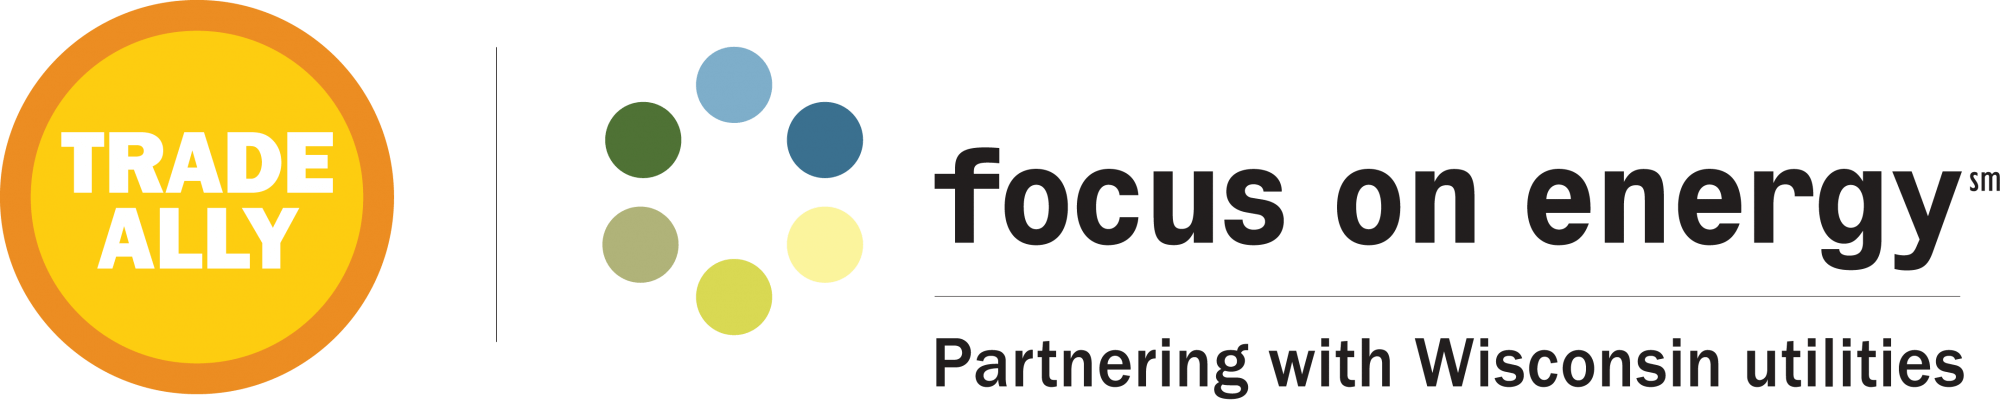 Trade Ally Logo for Focus on Energy